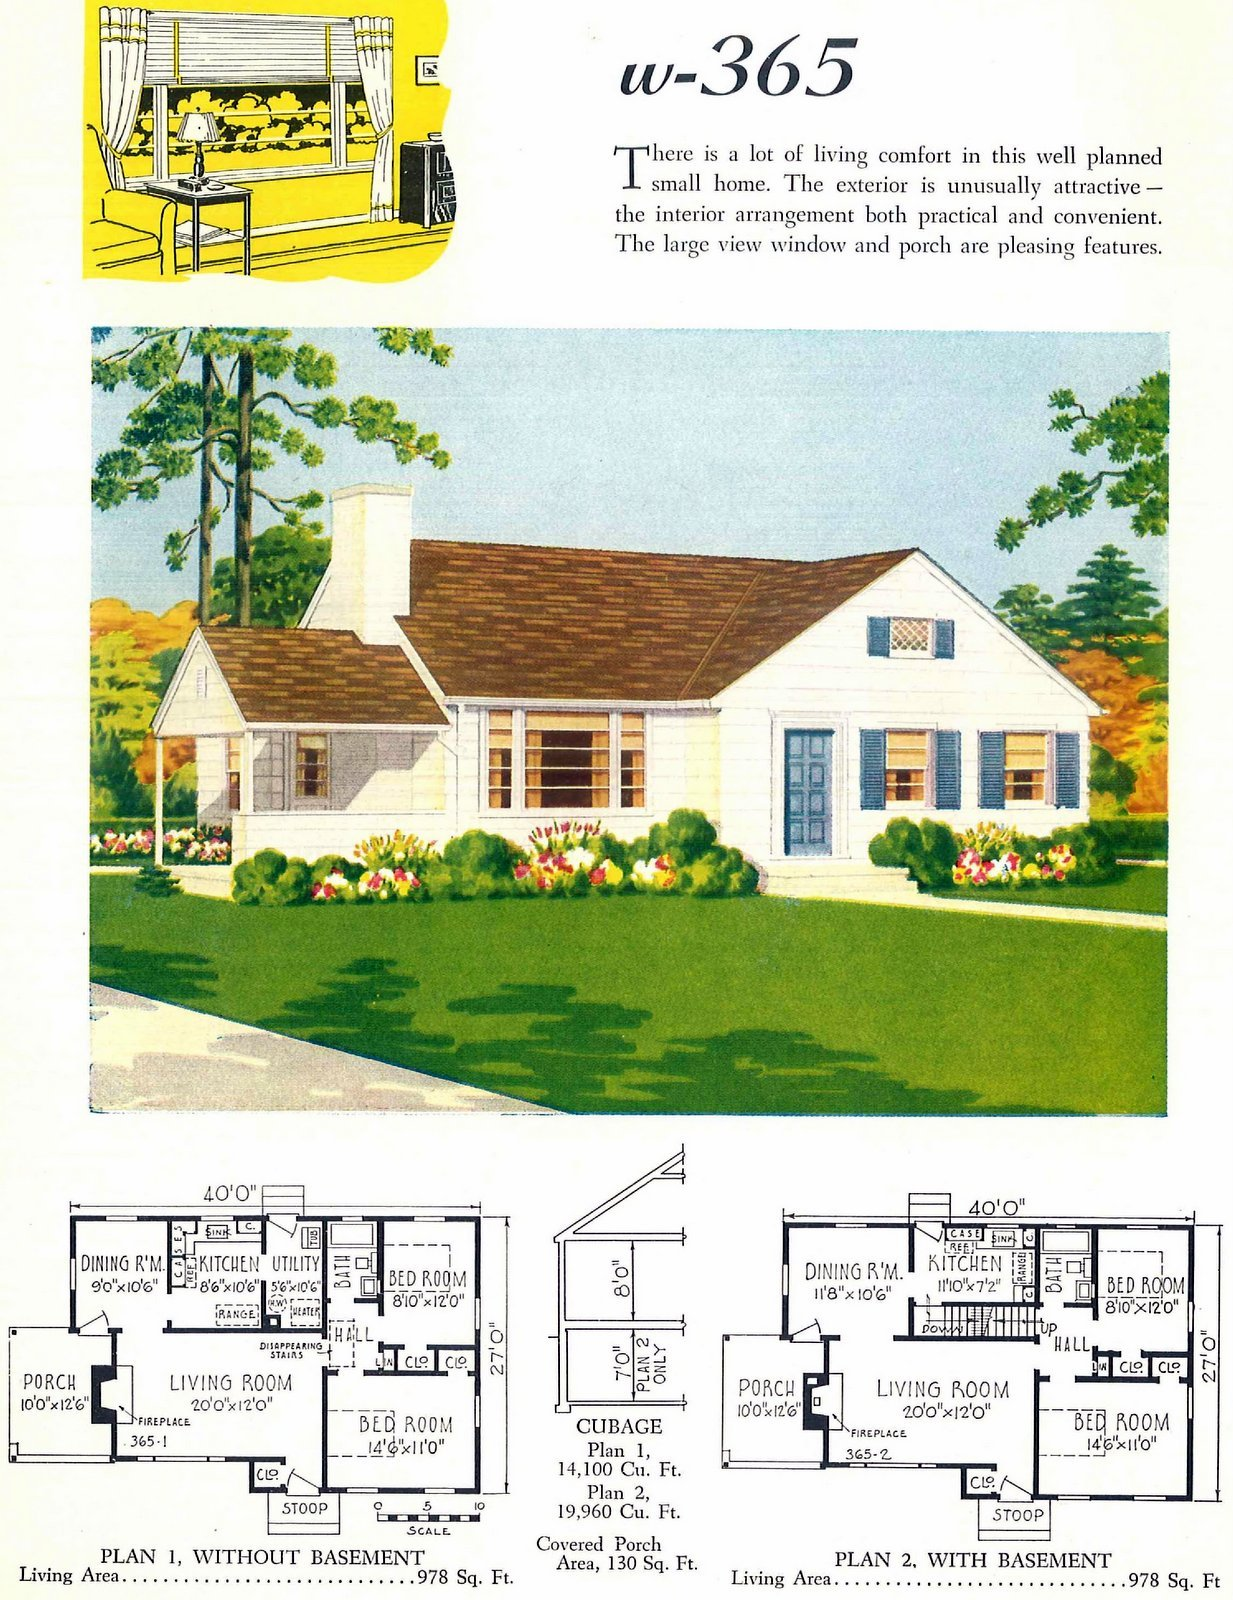 Old 40s post-war small starter home designs from 1948 (2)